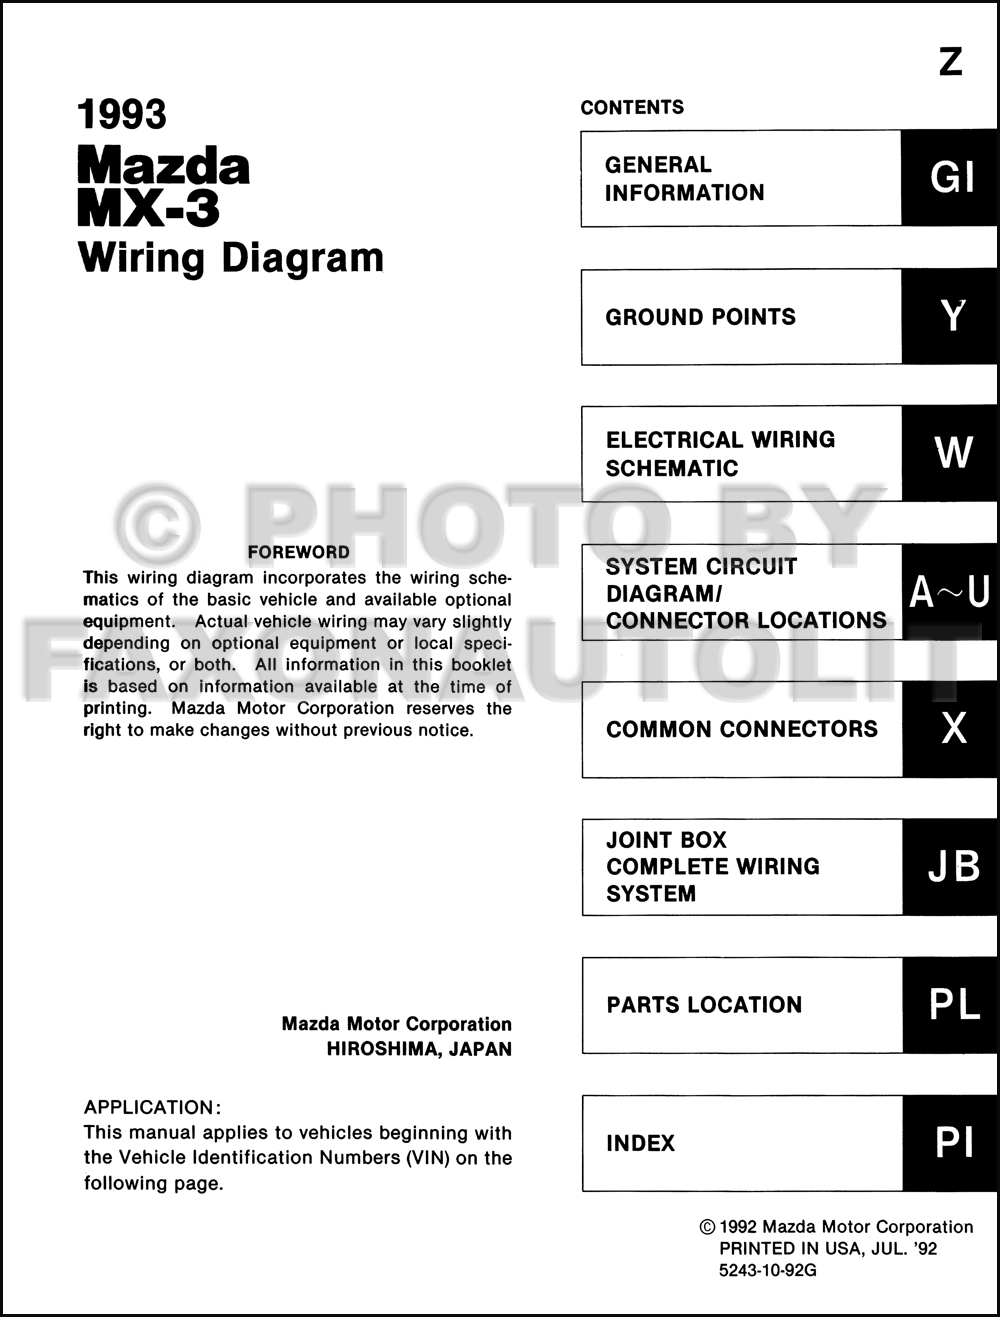 93 mazda mx3 wiring diagram detailed schematics diagram rh jppastryarts com  1992 Mazda 626 Wiring-Diagram Mazda 626 Radio Wiring Diagram